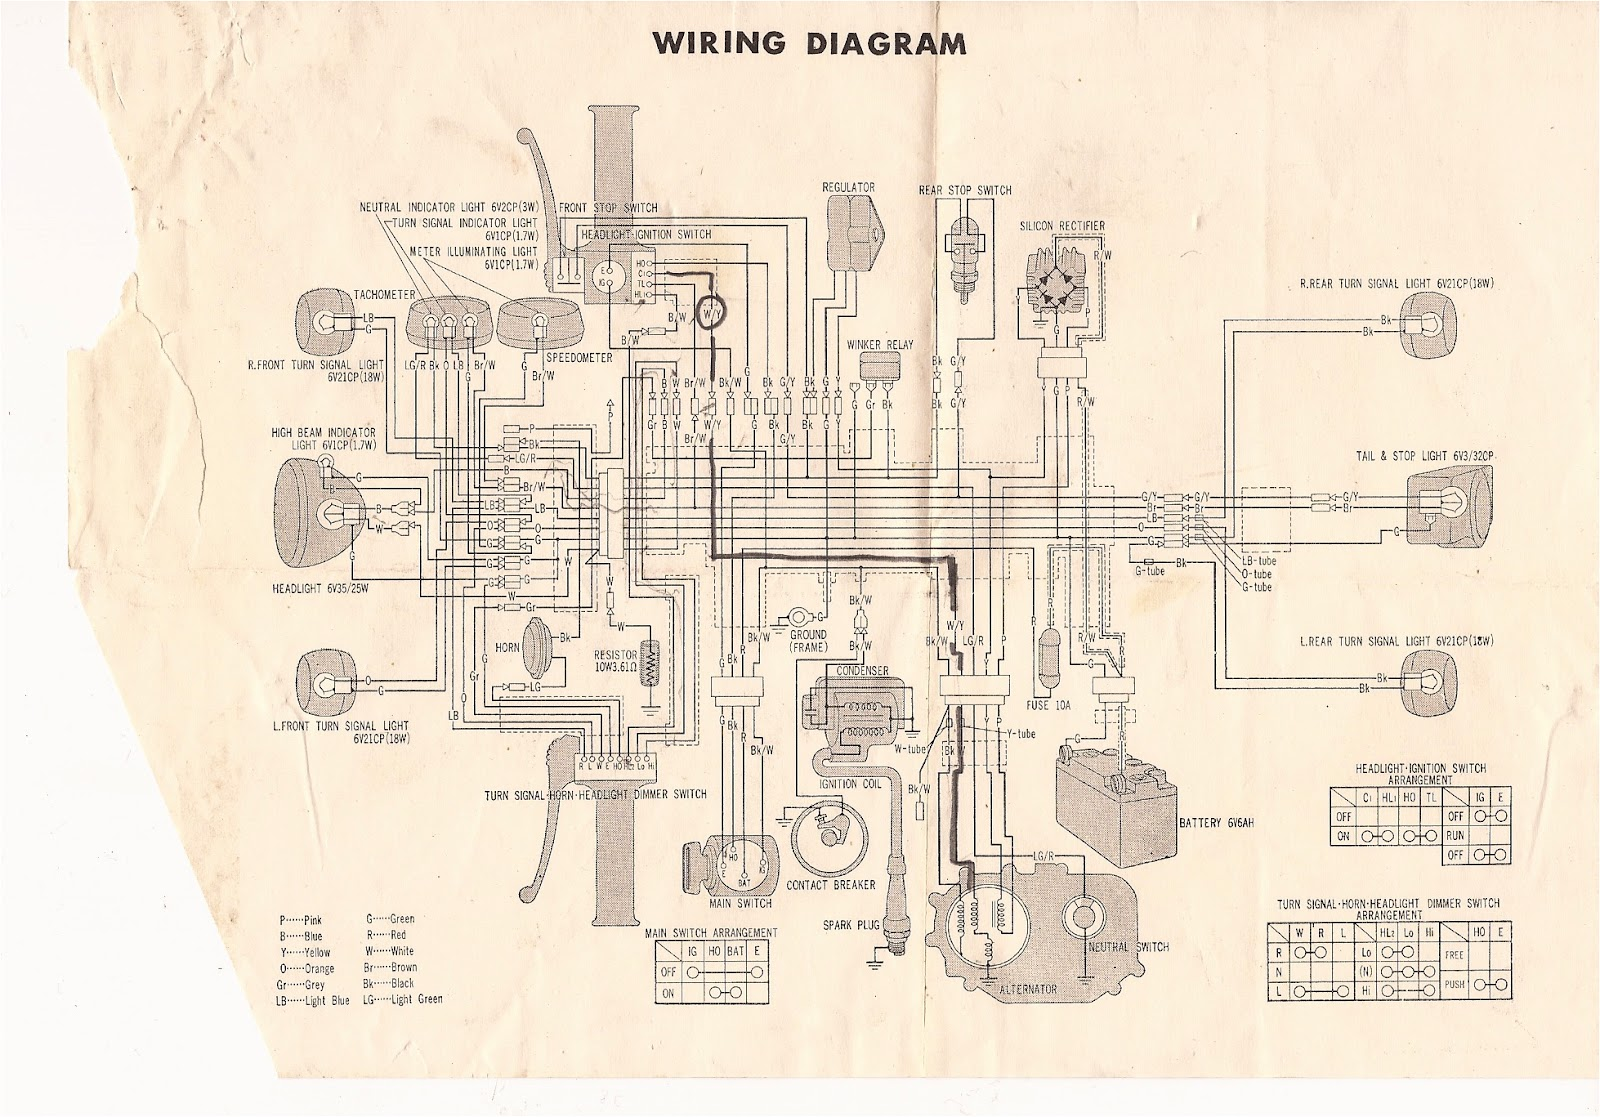 r4l xl350 wiring diagram (and xl250) 1986 honda xl250r bikepics honda xl250r wiring #8